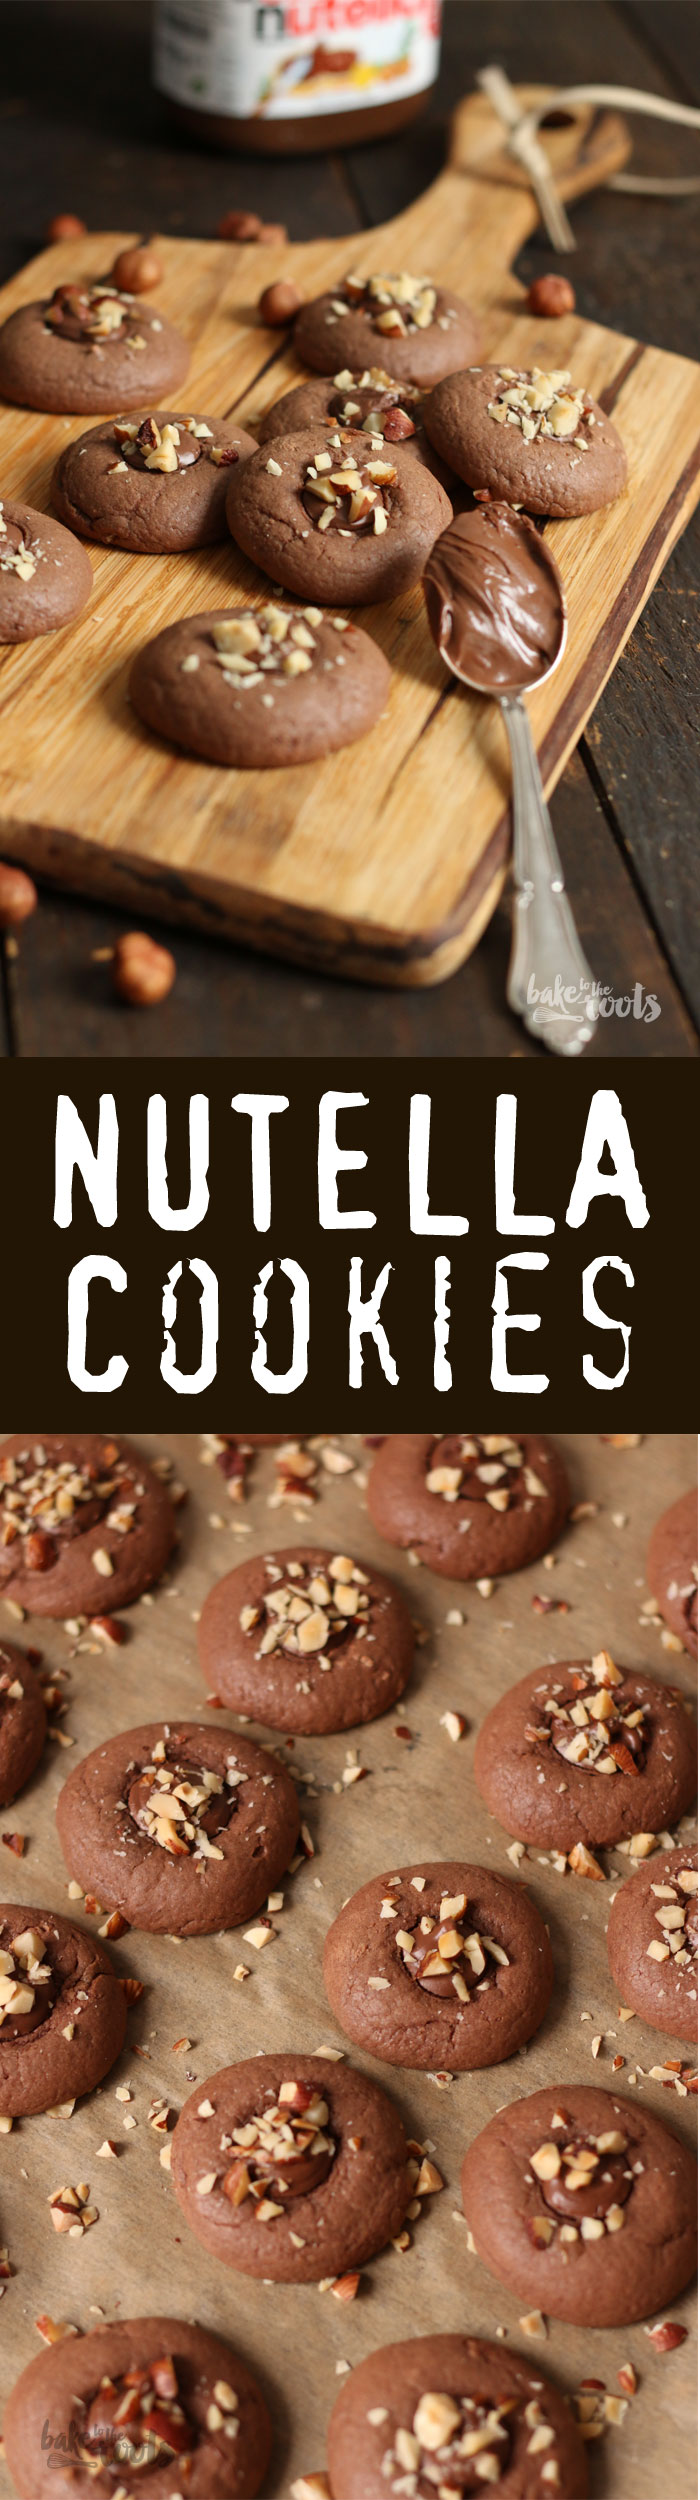 Delicious and easy to make Nutella Cookies | Bake to the roots